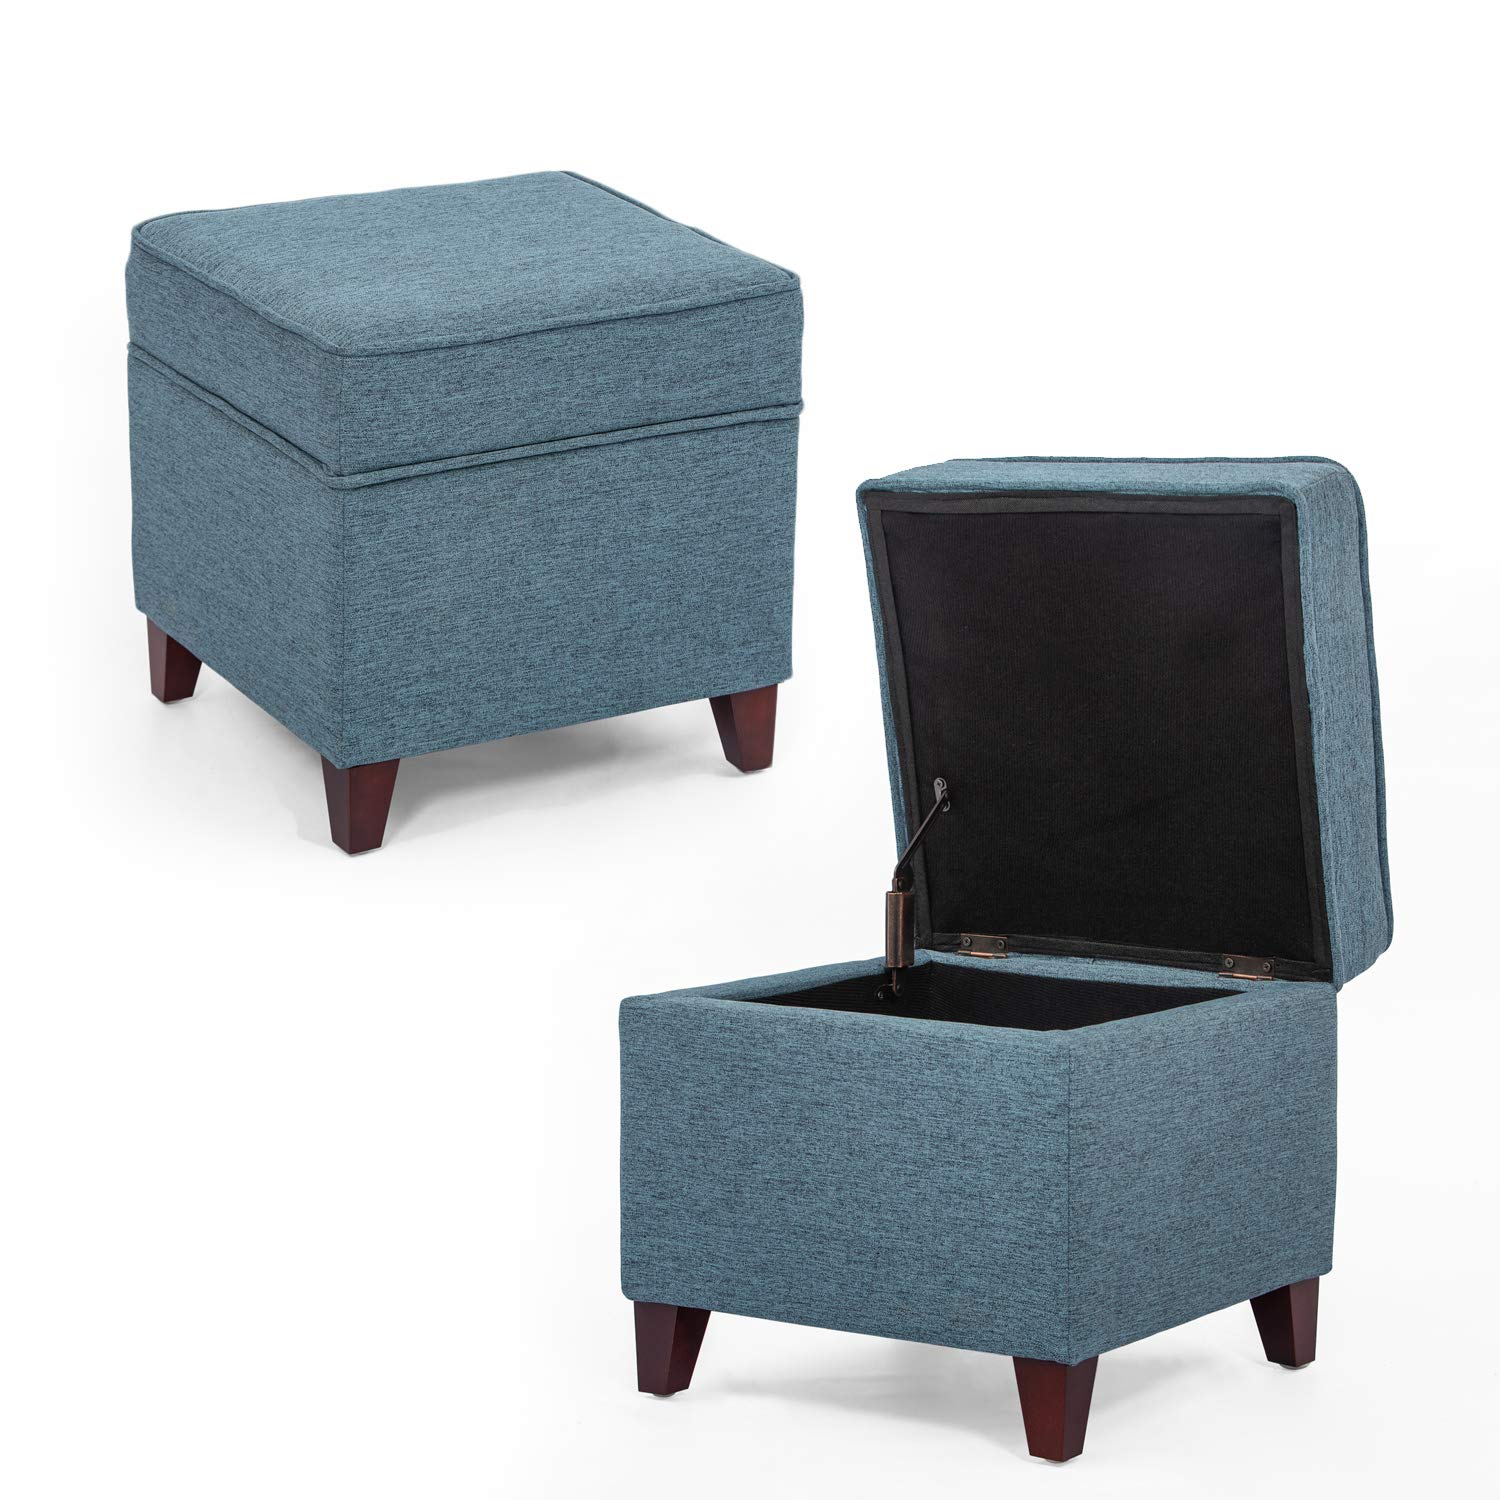 Homebeez Storage Ottoman Square Footrest Stool Small Fabric Bench (Teal)